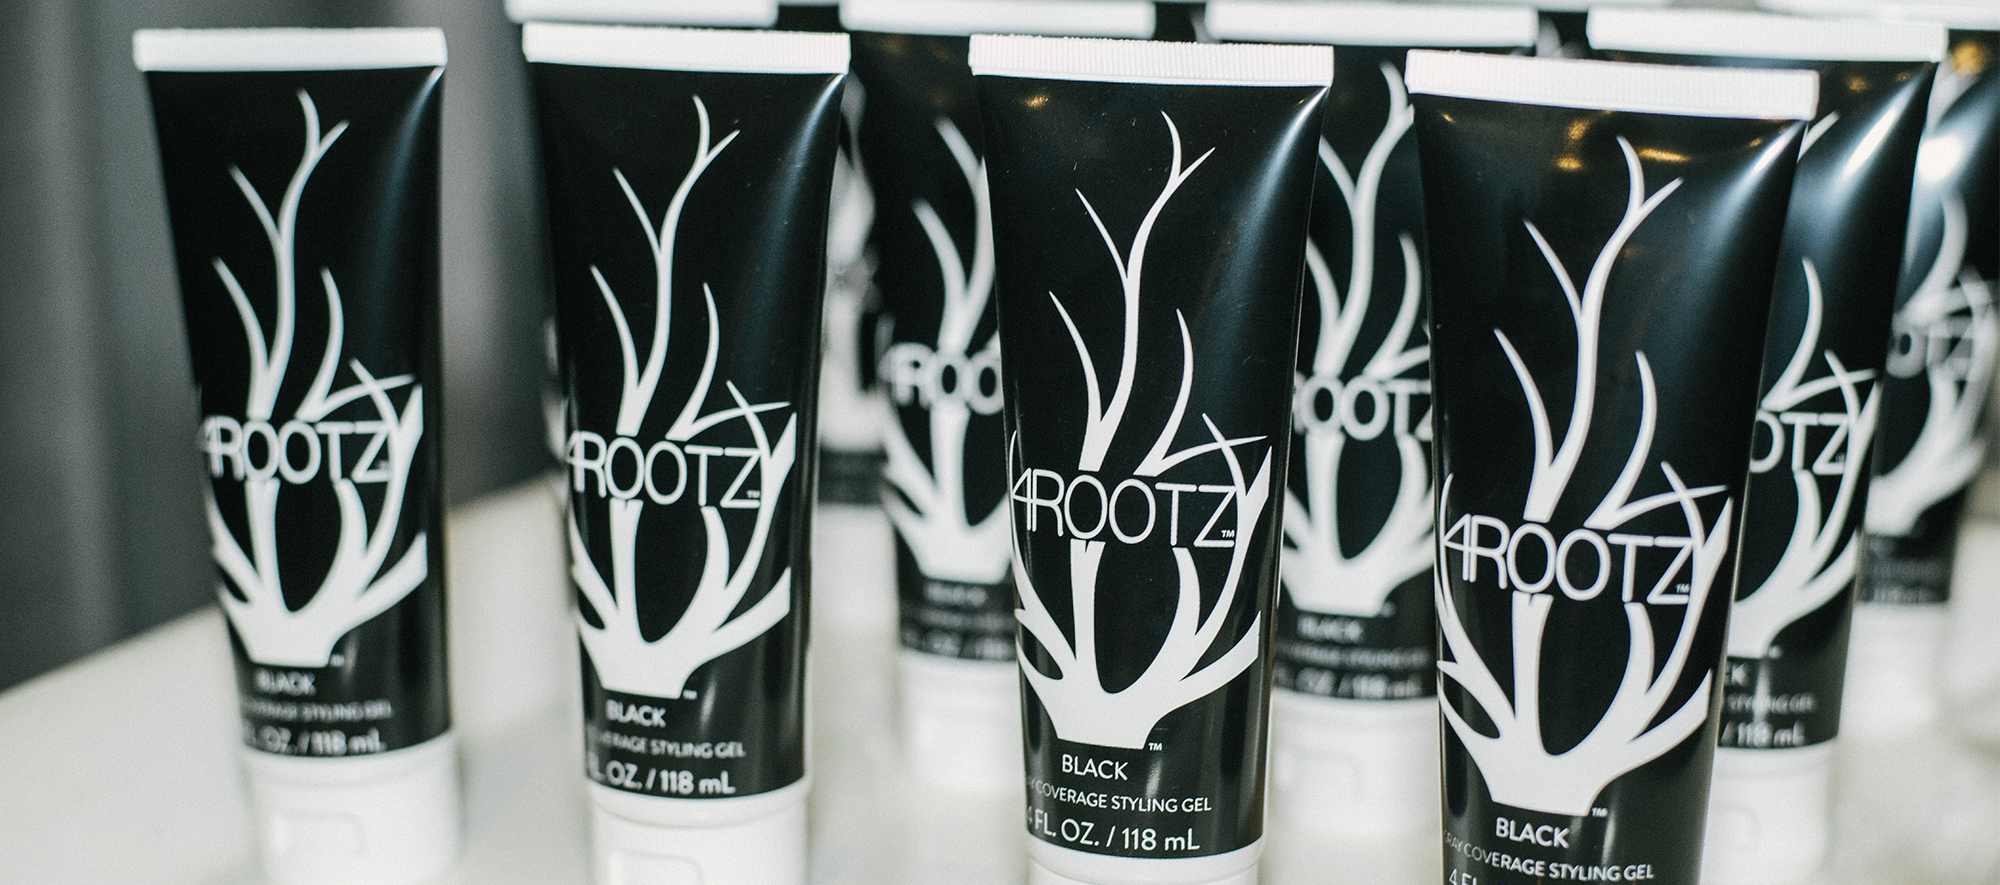 4RootZ Hair gel bottle design